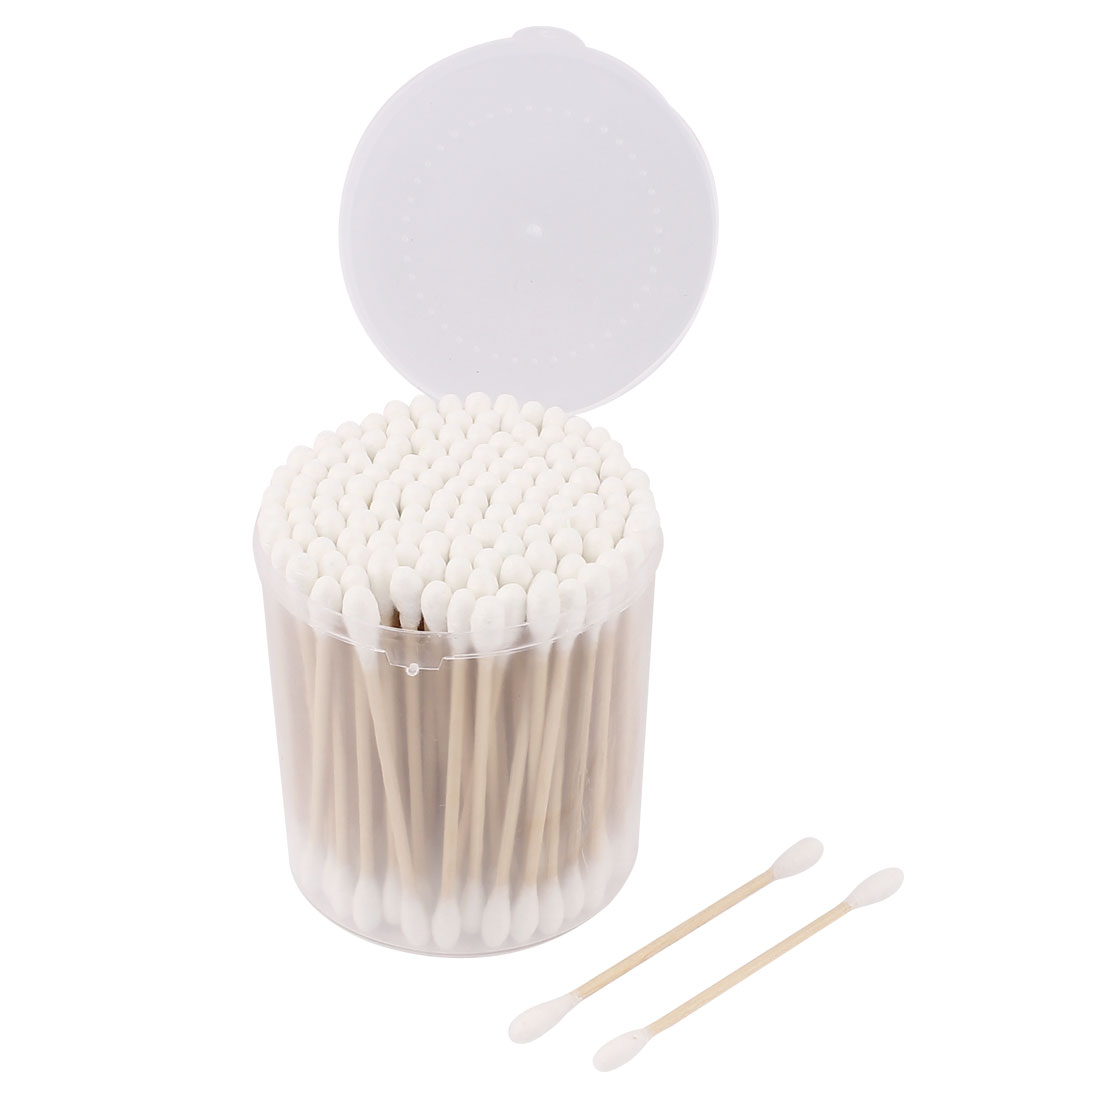 150pcs Disposable Double Ends Cosmetic Make Up Cotton Buds Swabs